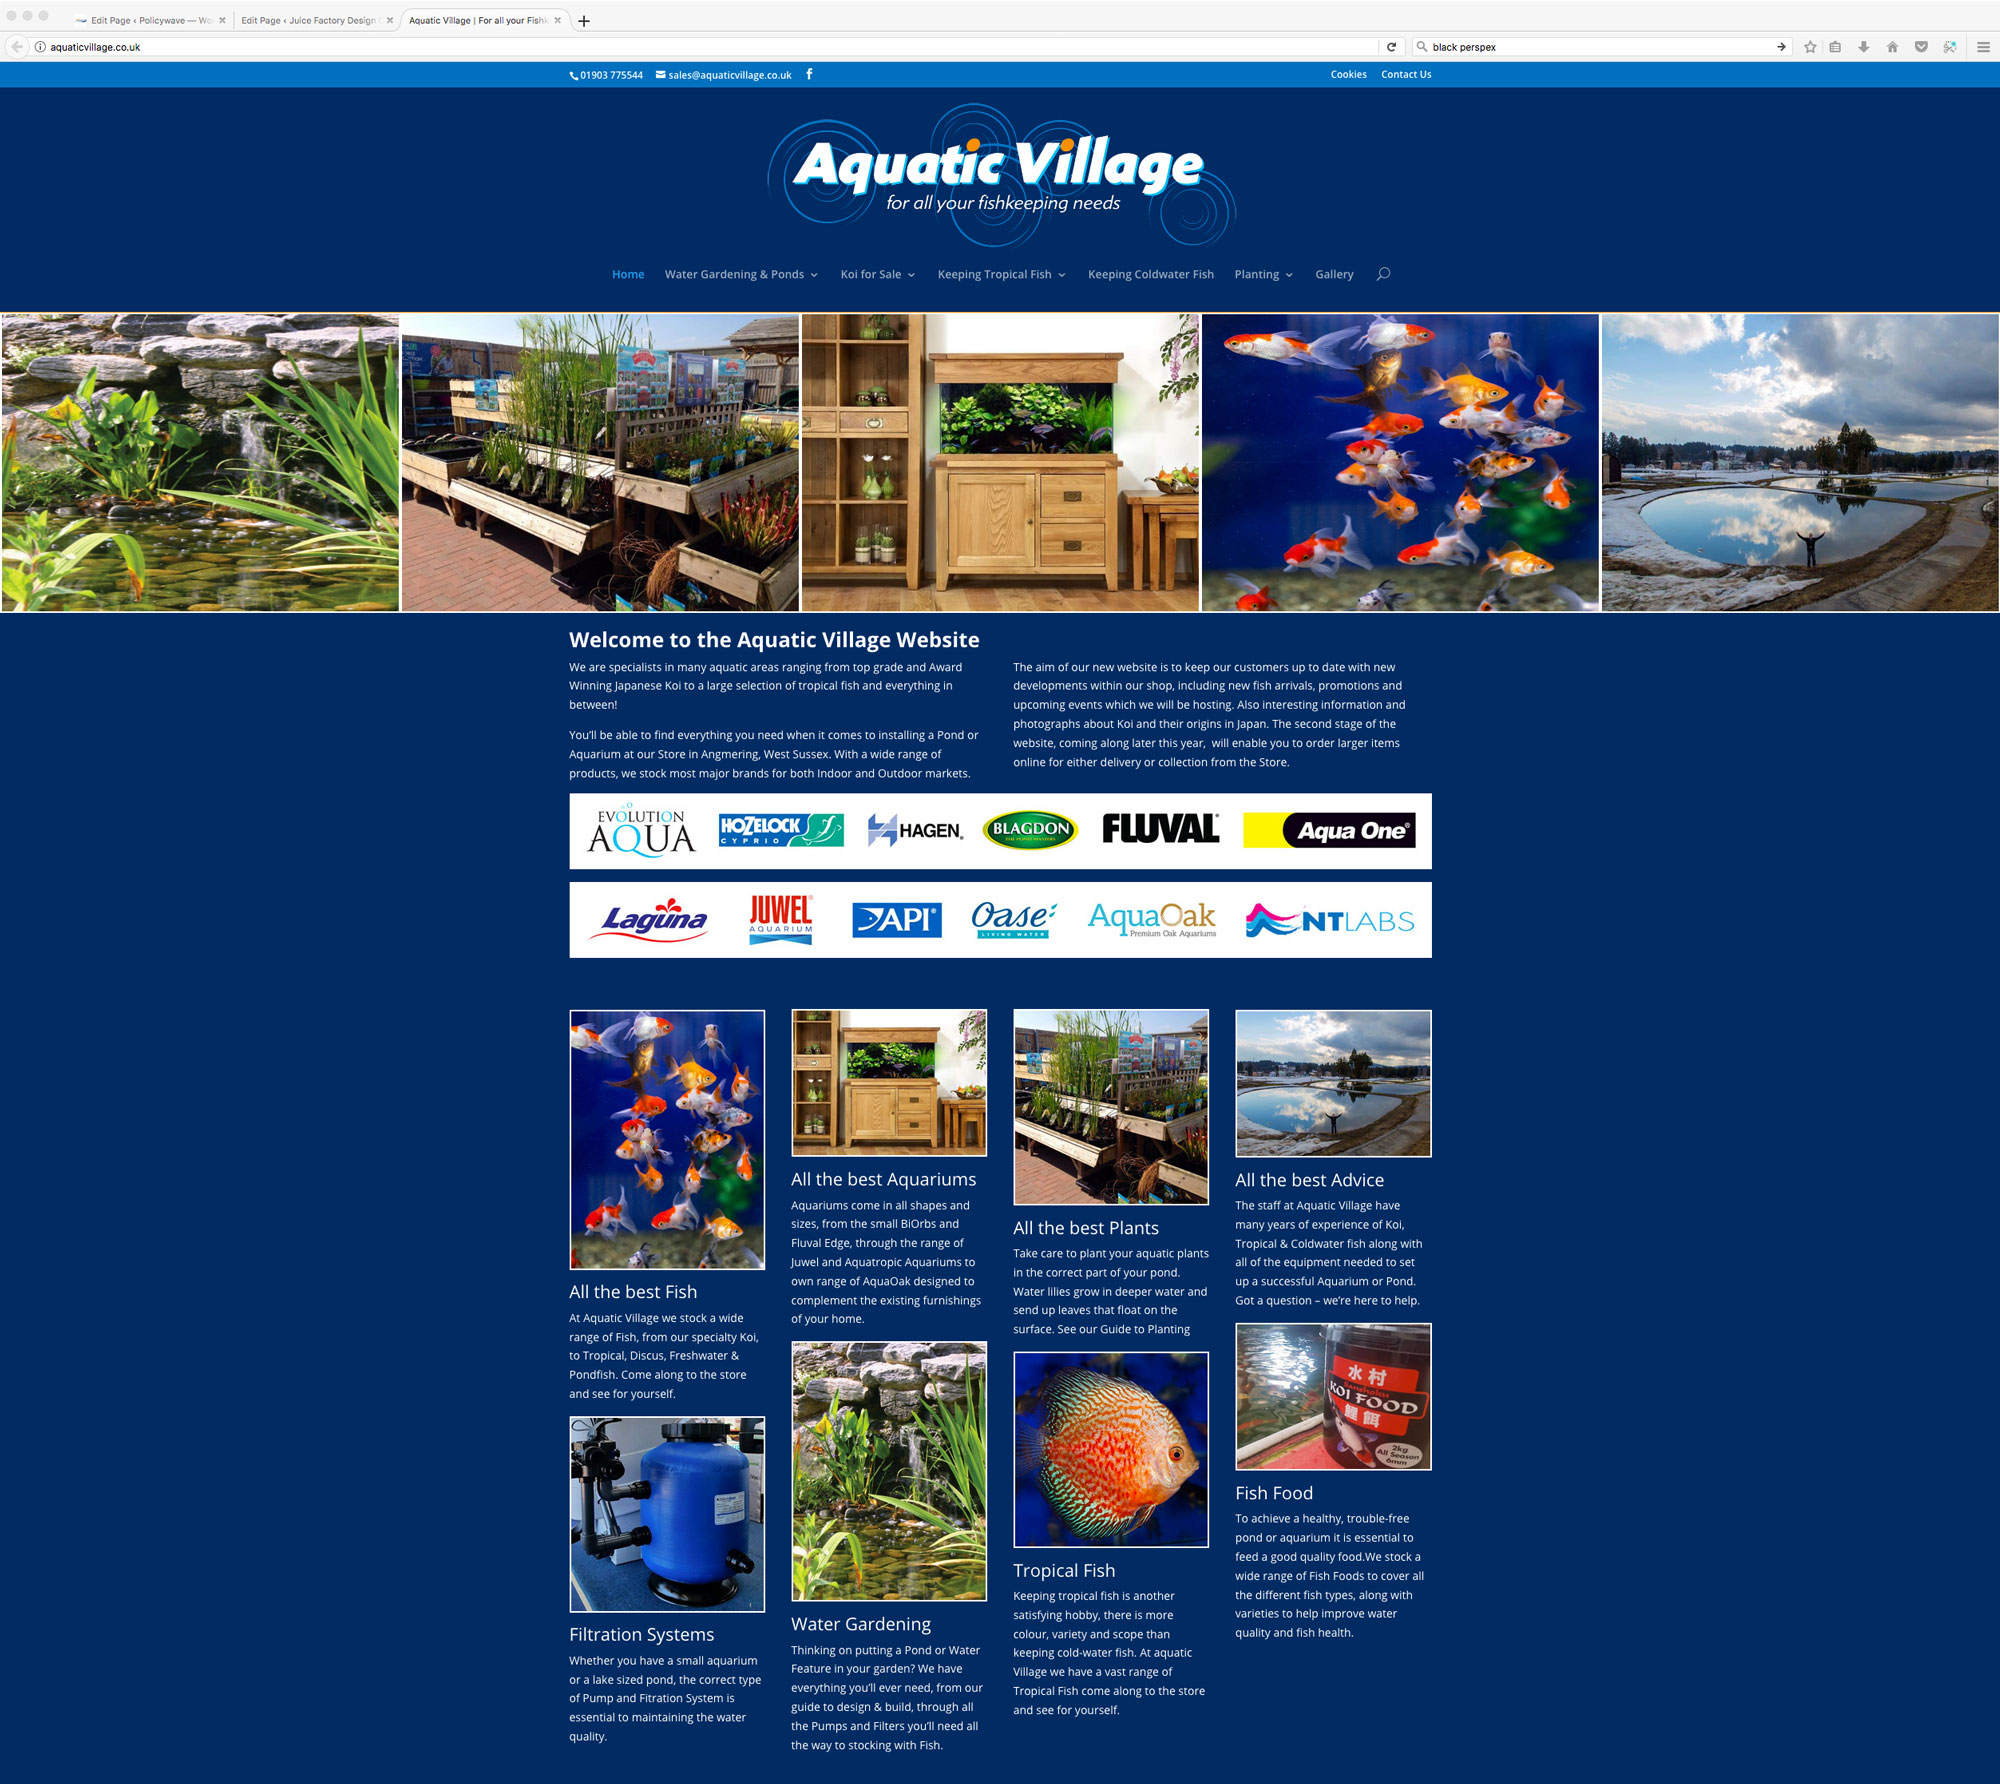 Aquatic Village Website Design